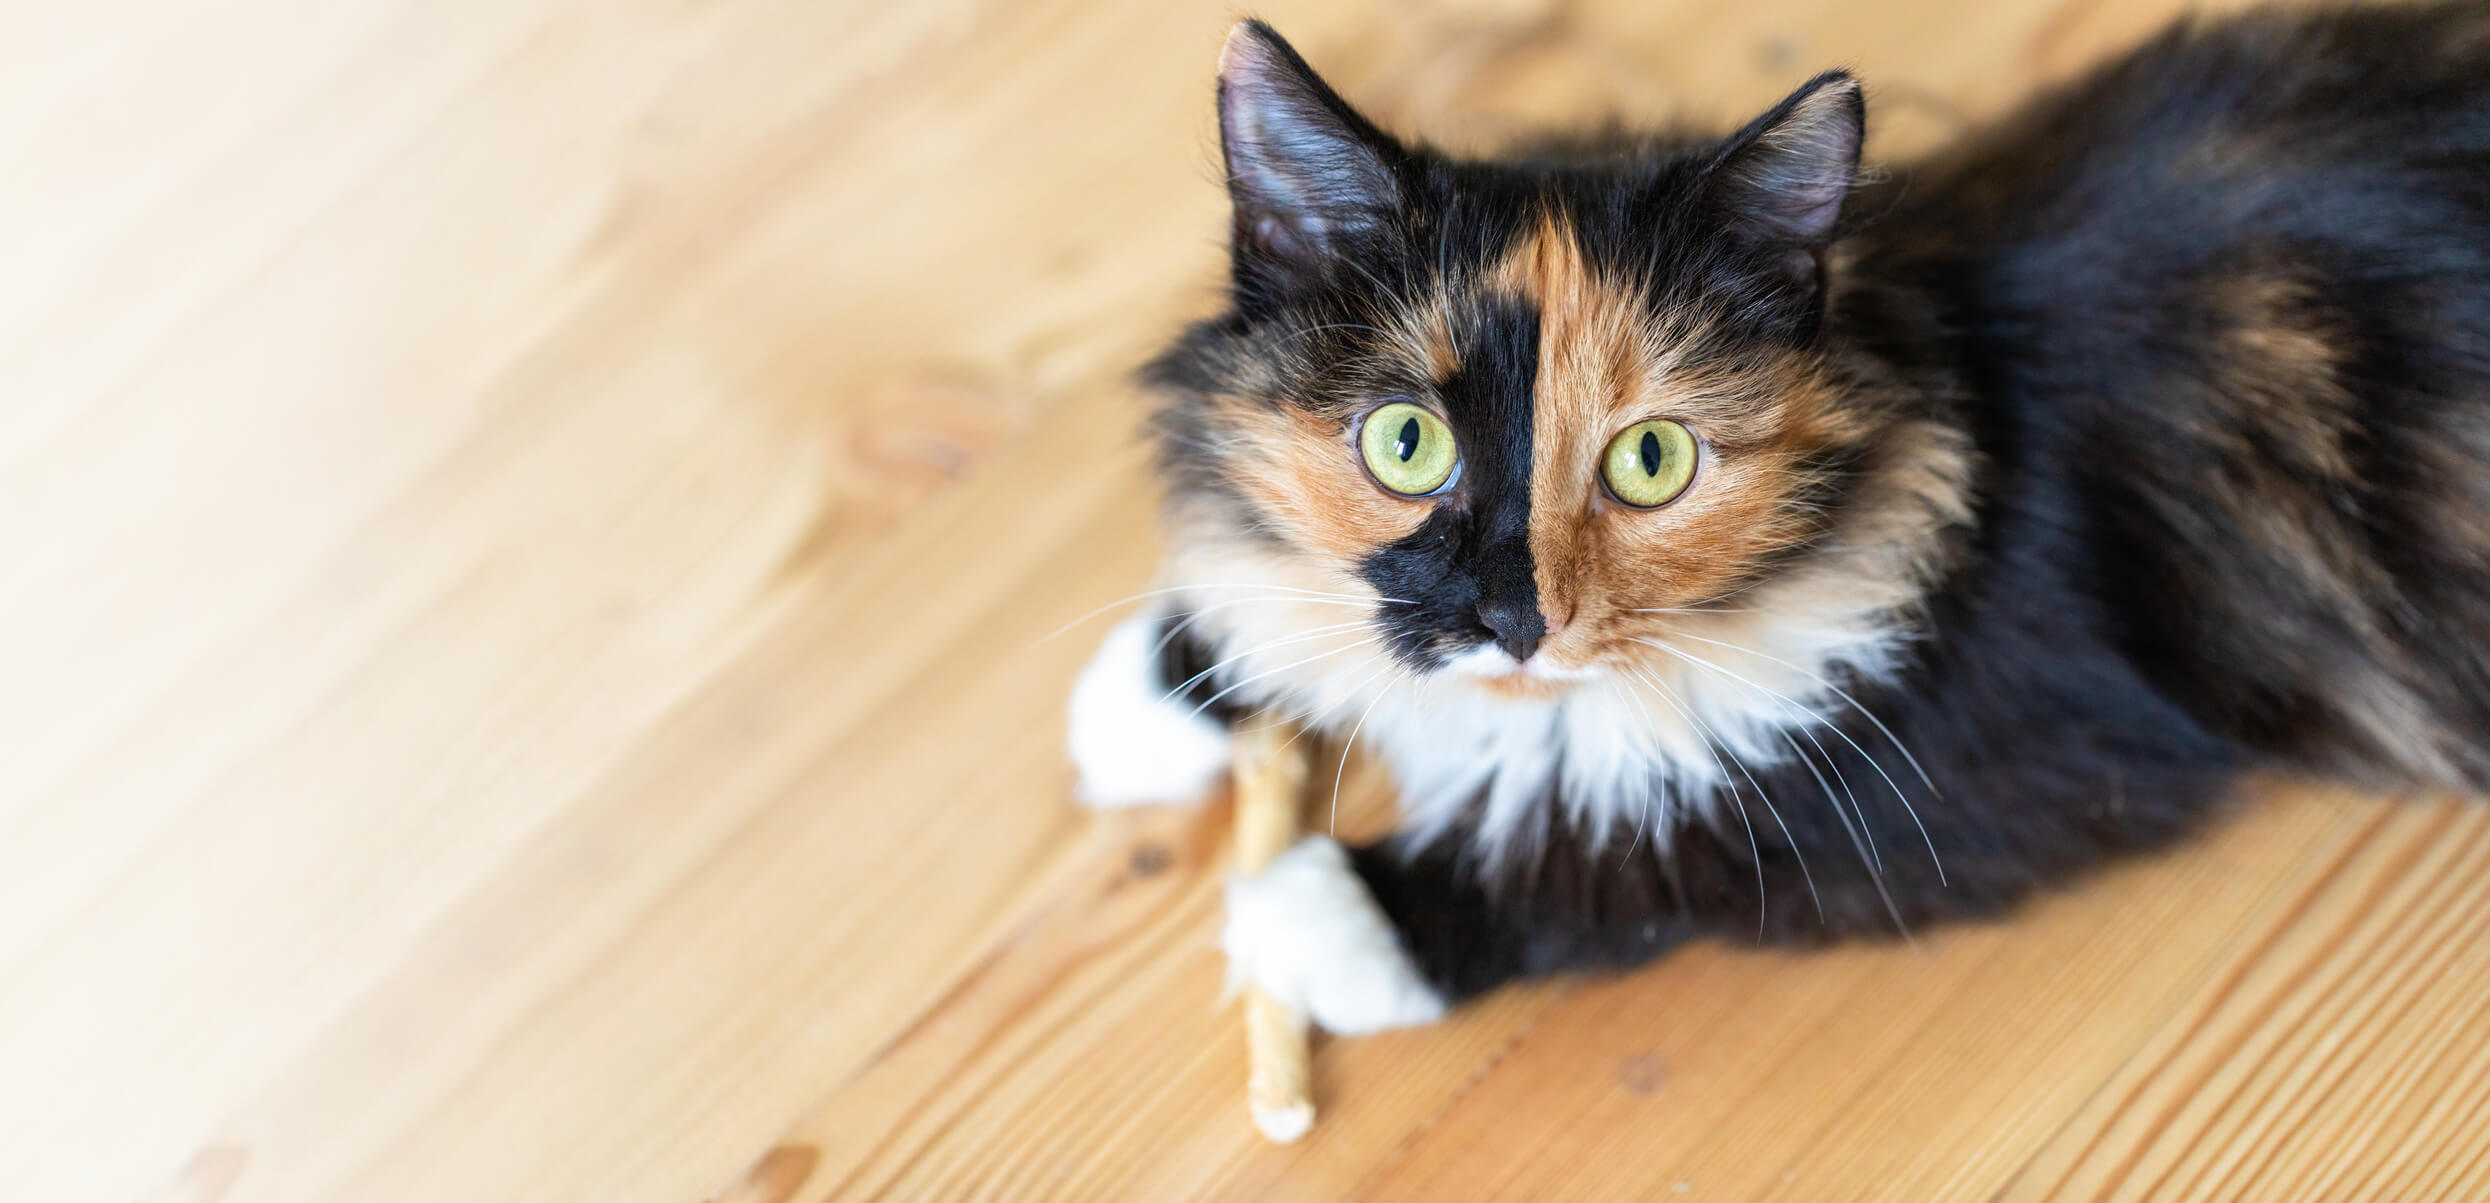 Tri-color chimeric cat on wood floor looking up at camera with big eyes